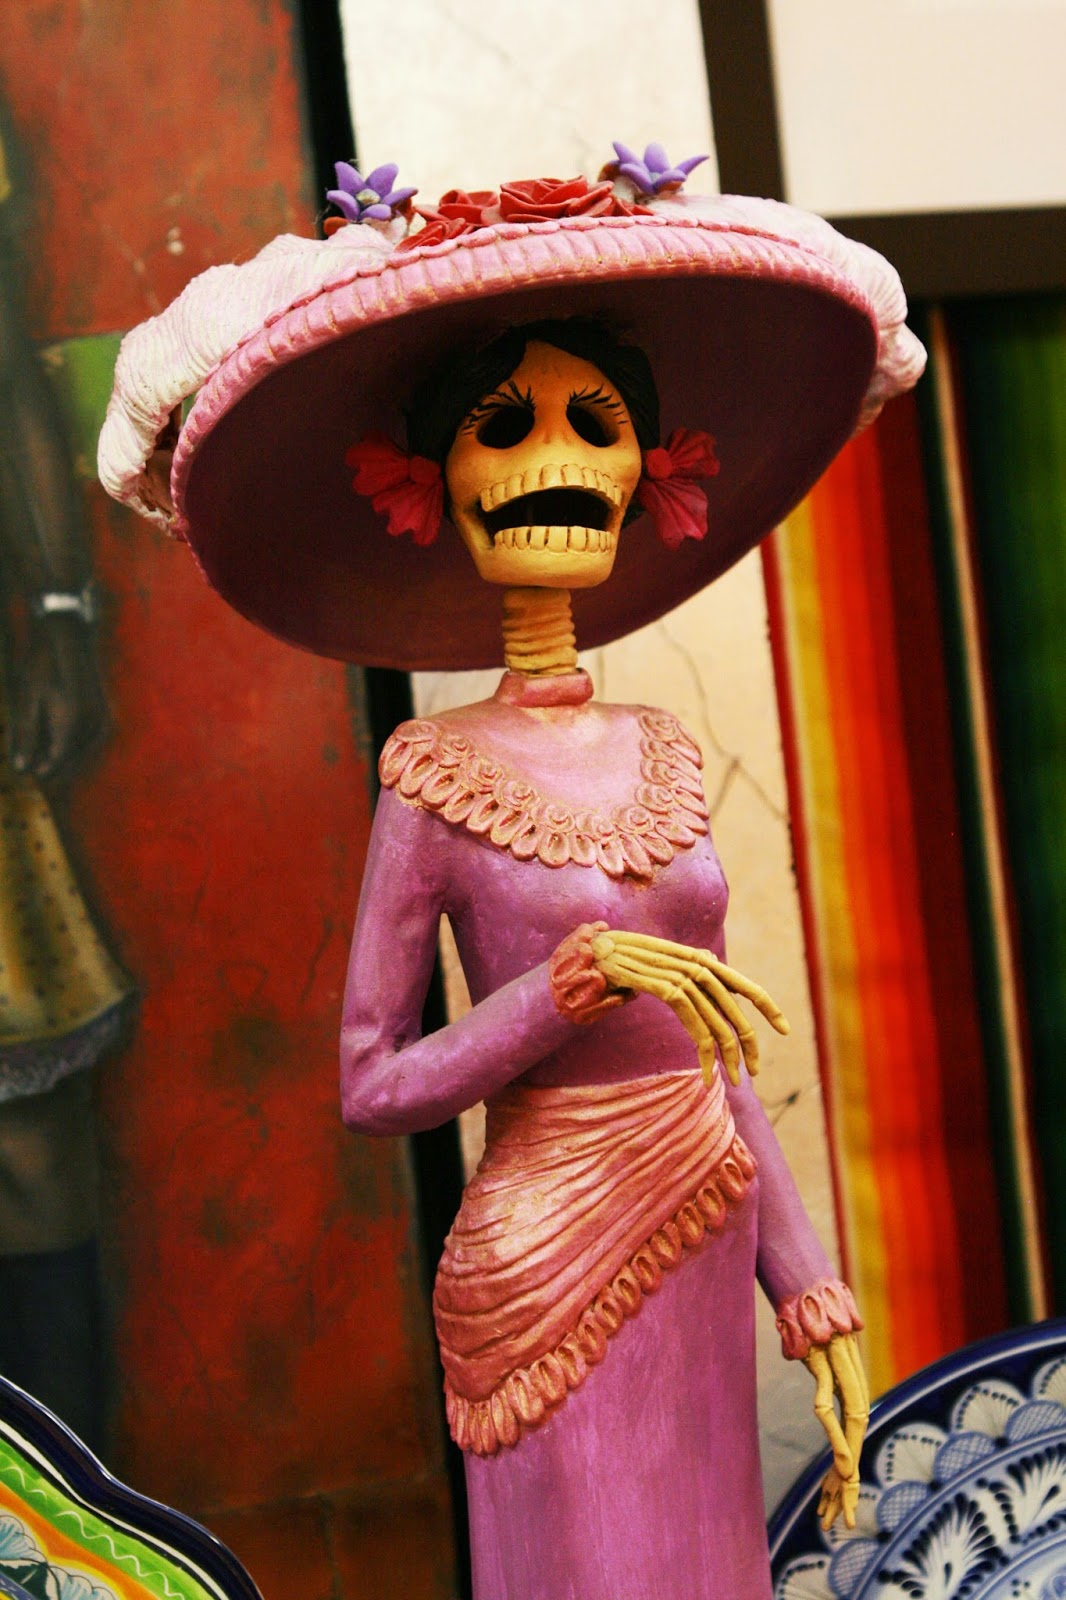 Female skeleton in a hat and dress which looks like its from the Titanic time period.